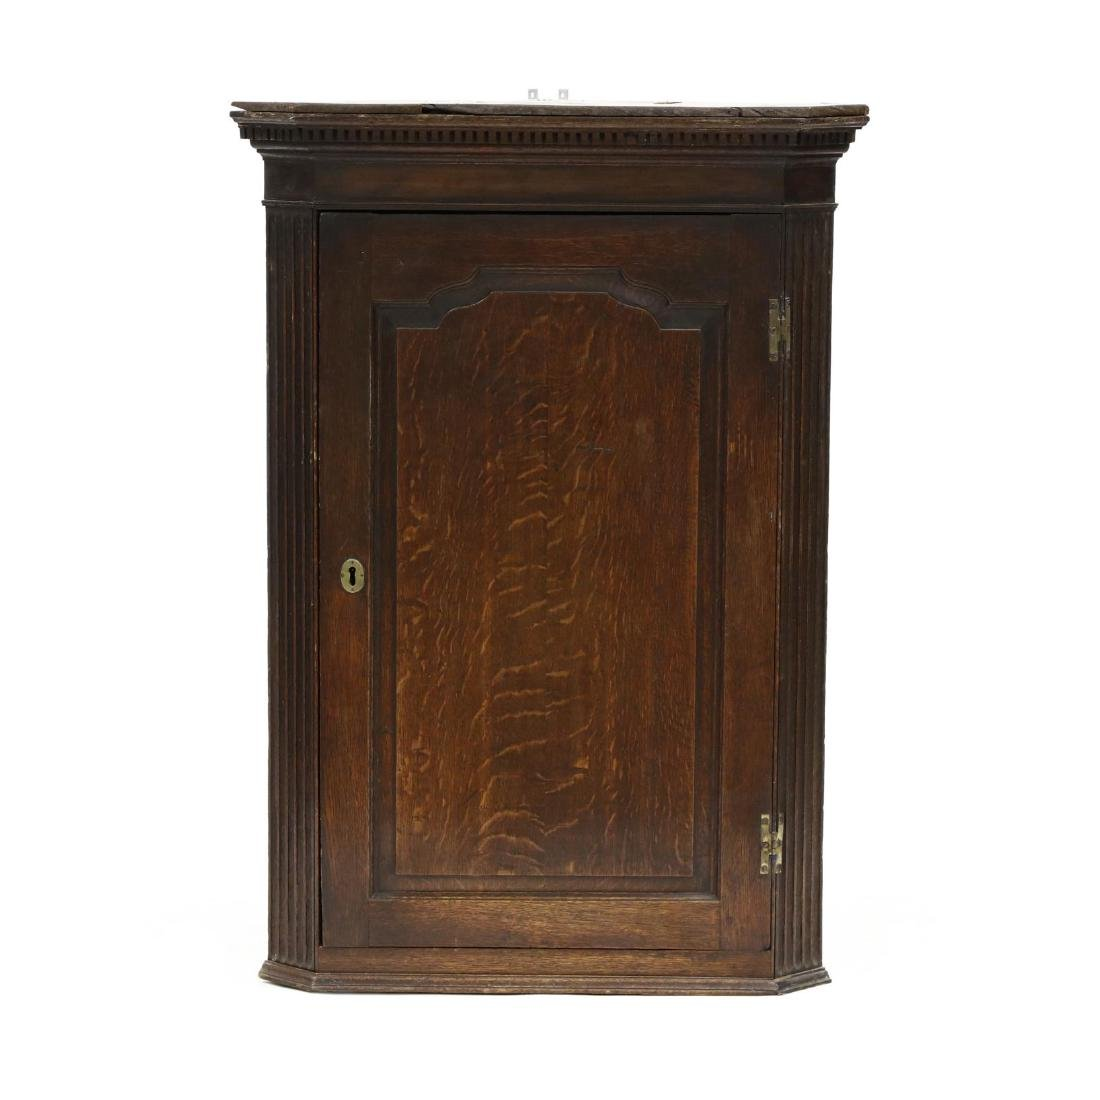 George III Carved Oak Hanging Corner Cupboard